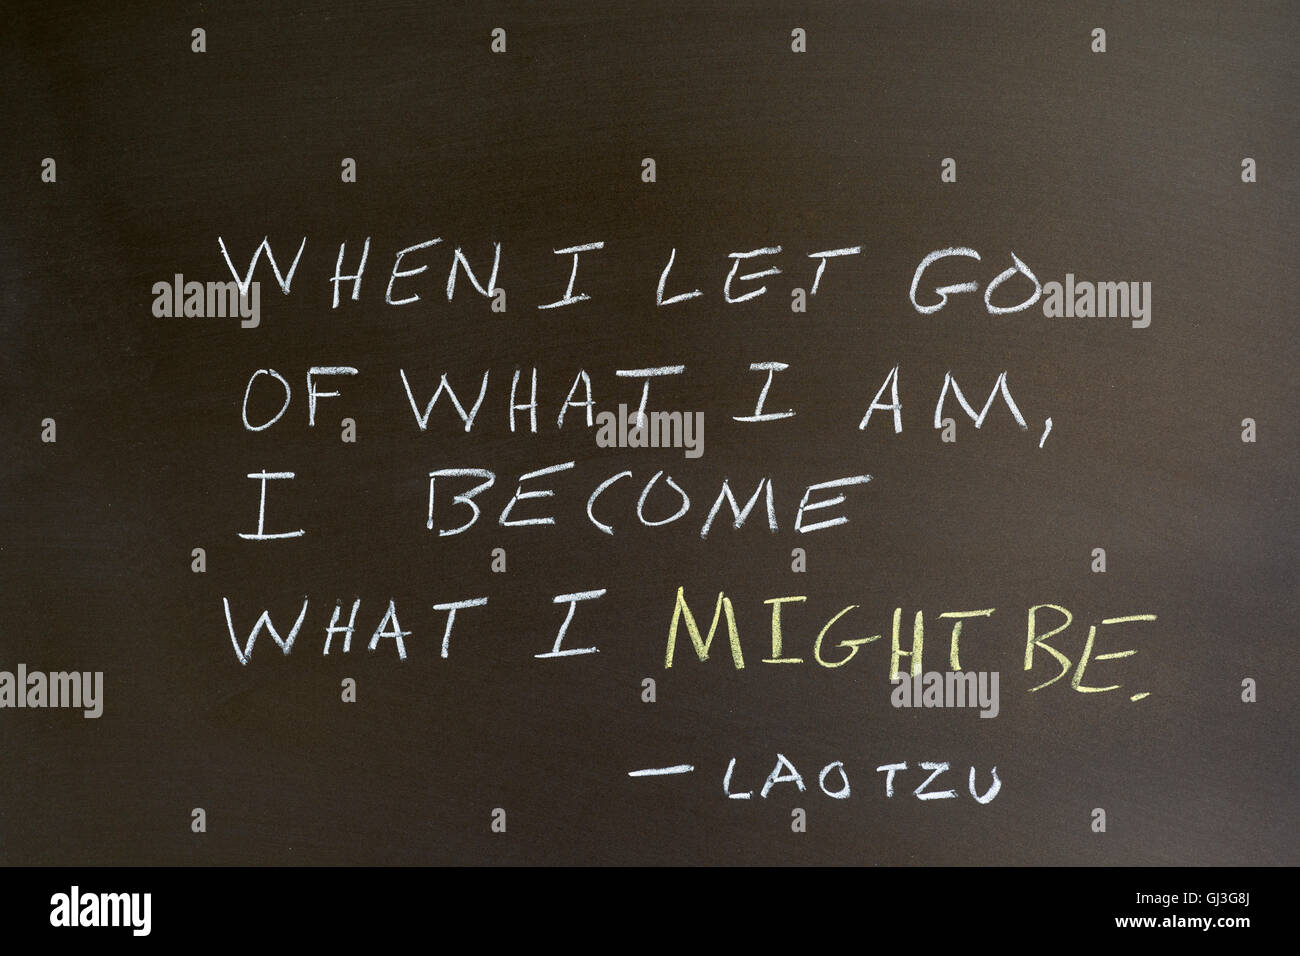 Quote by Lao Tzu. 'When I let go of what I am, I become what I might be' Written on chalkboard. - Stock Image